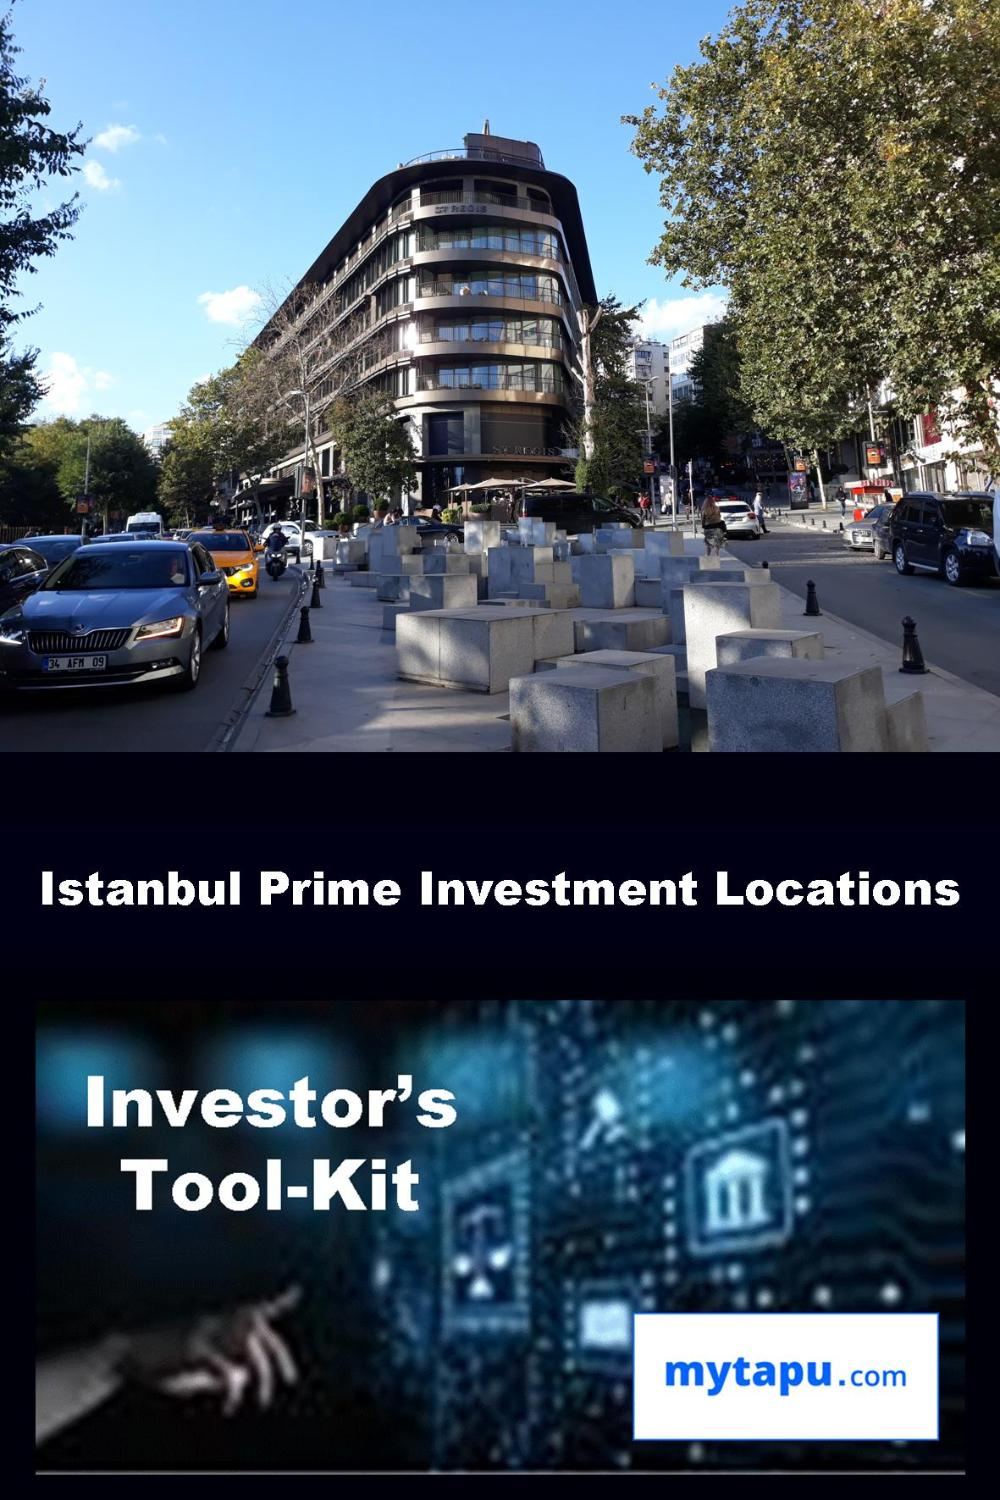 Exclusive Luxury Property for Investment in Prime Central Istanbul Locations